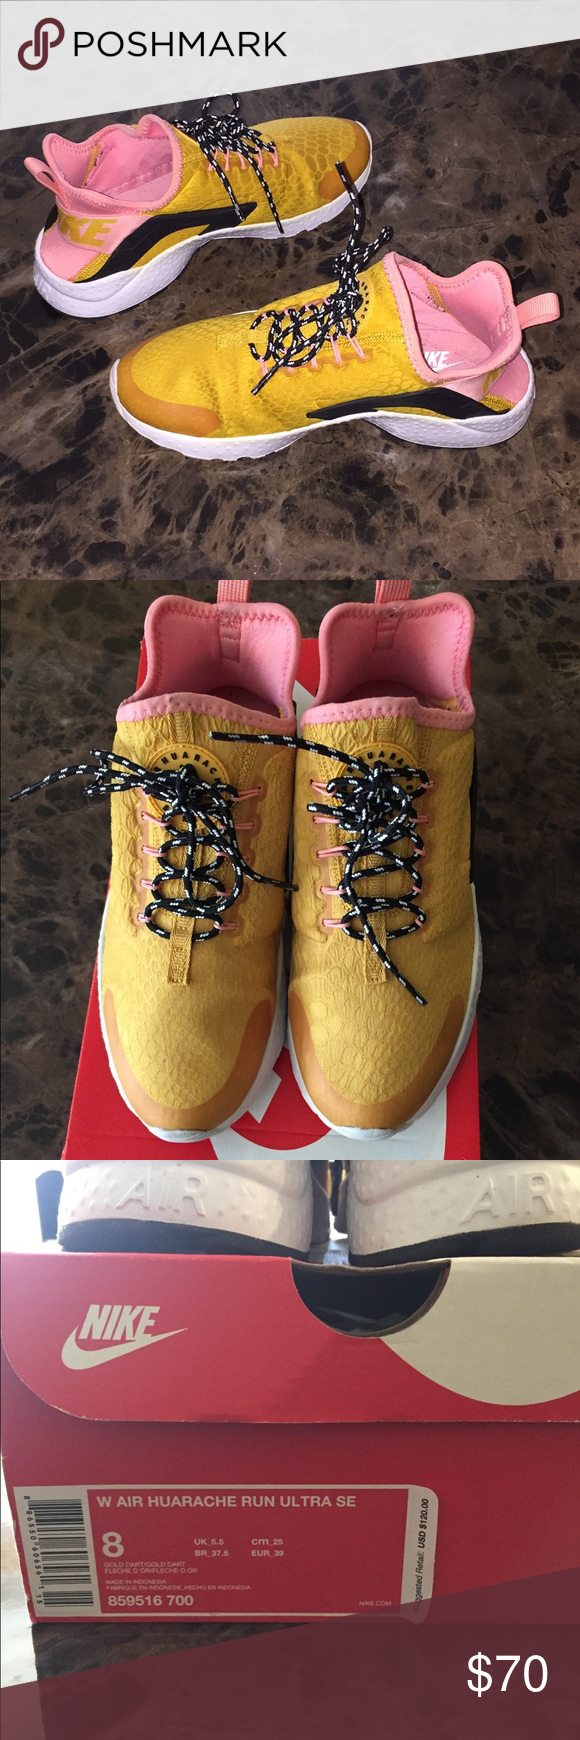 12a18cc34ba9 Women s Huarache Run Ultra SE size 8 Great Condition‼ Gold Dart  Pink. Worn  only once. Super Comfy. Nike Shoes Sneakers